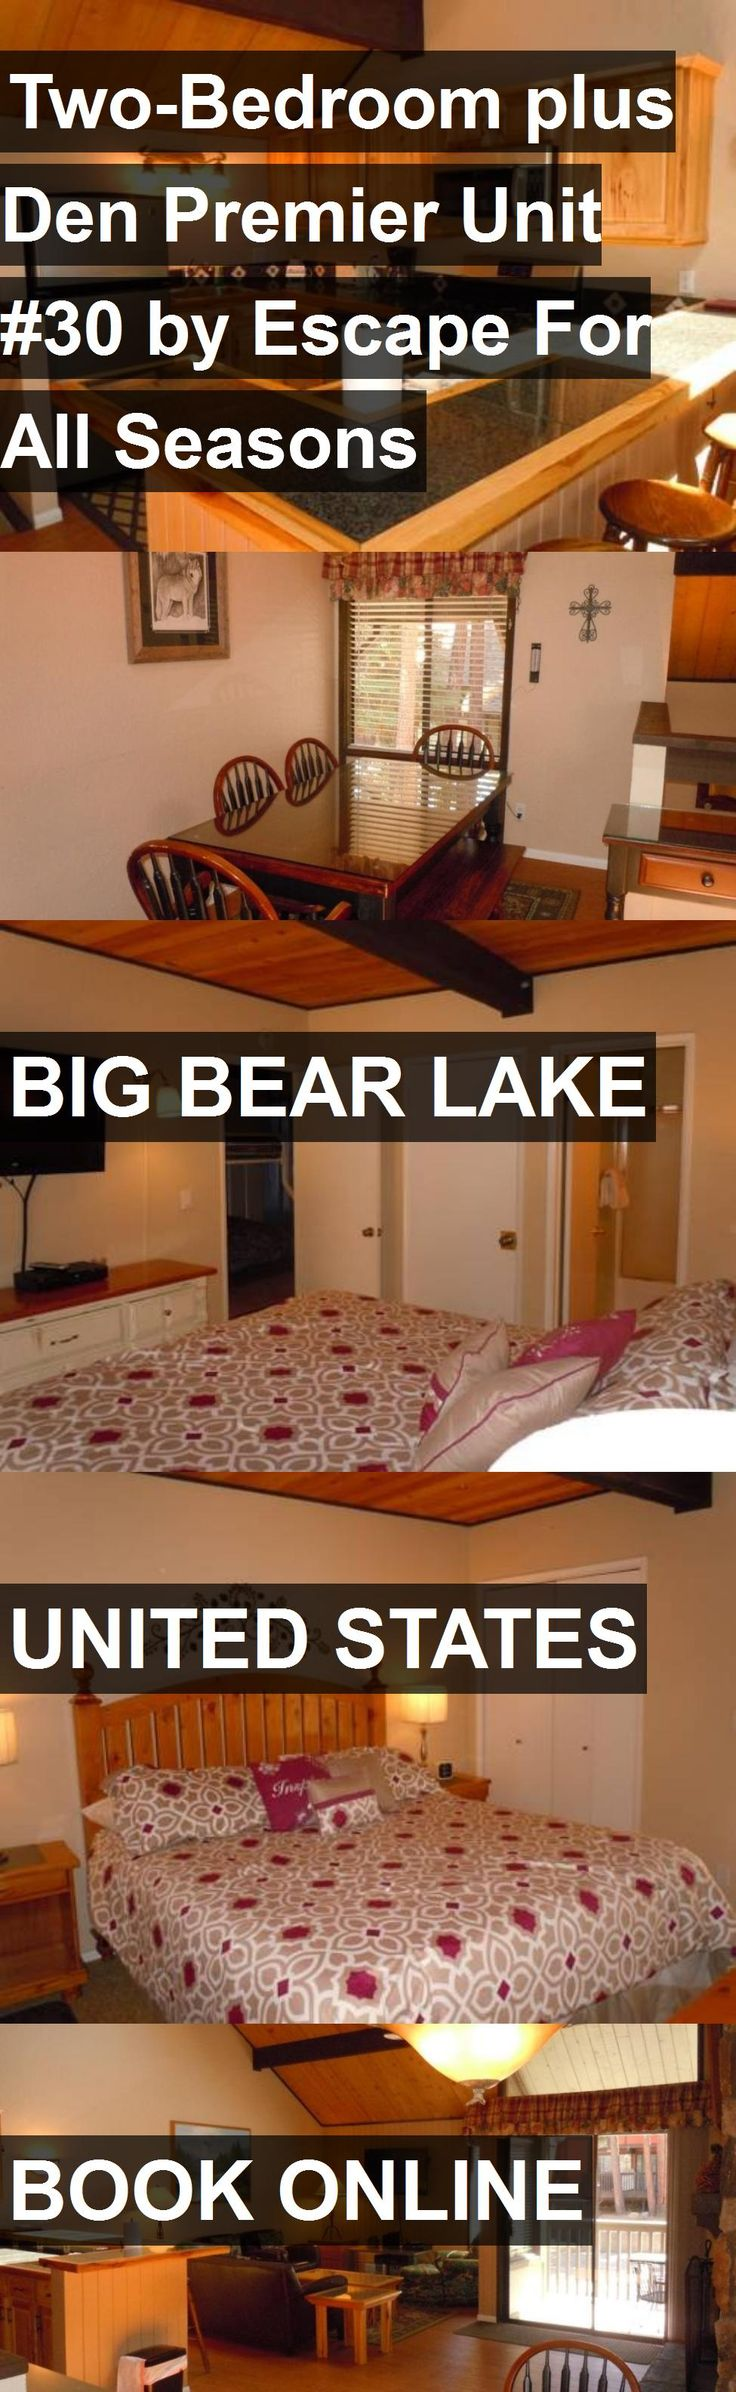 Hotel Two-Bedroom plus Den Premier Unit #30 by Escape For All Seasons in Big Bear Lake, United States. For more information, photos, reviews and best prices please follow the link. #UnitedStates #BigBearLake #travel #vacation #hotel